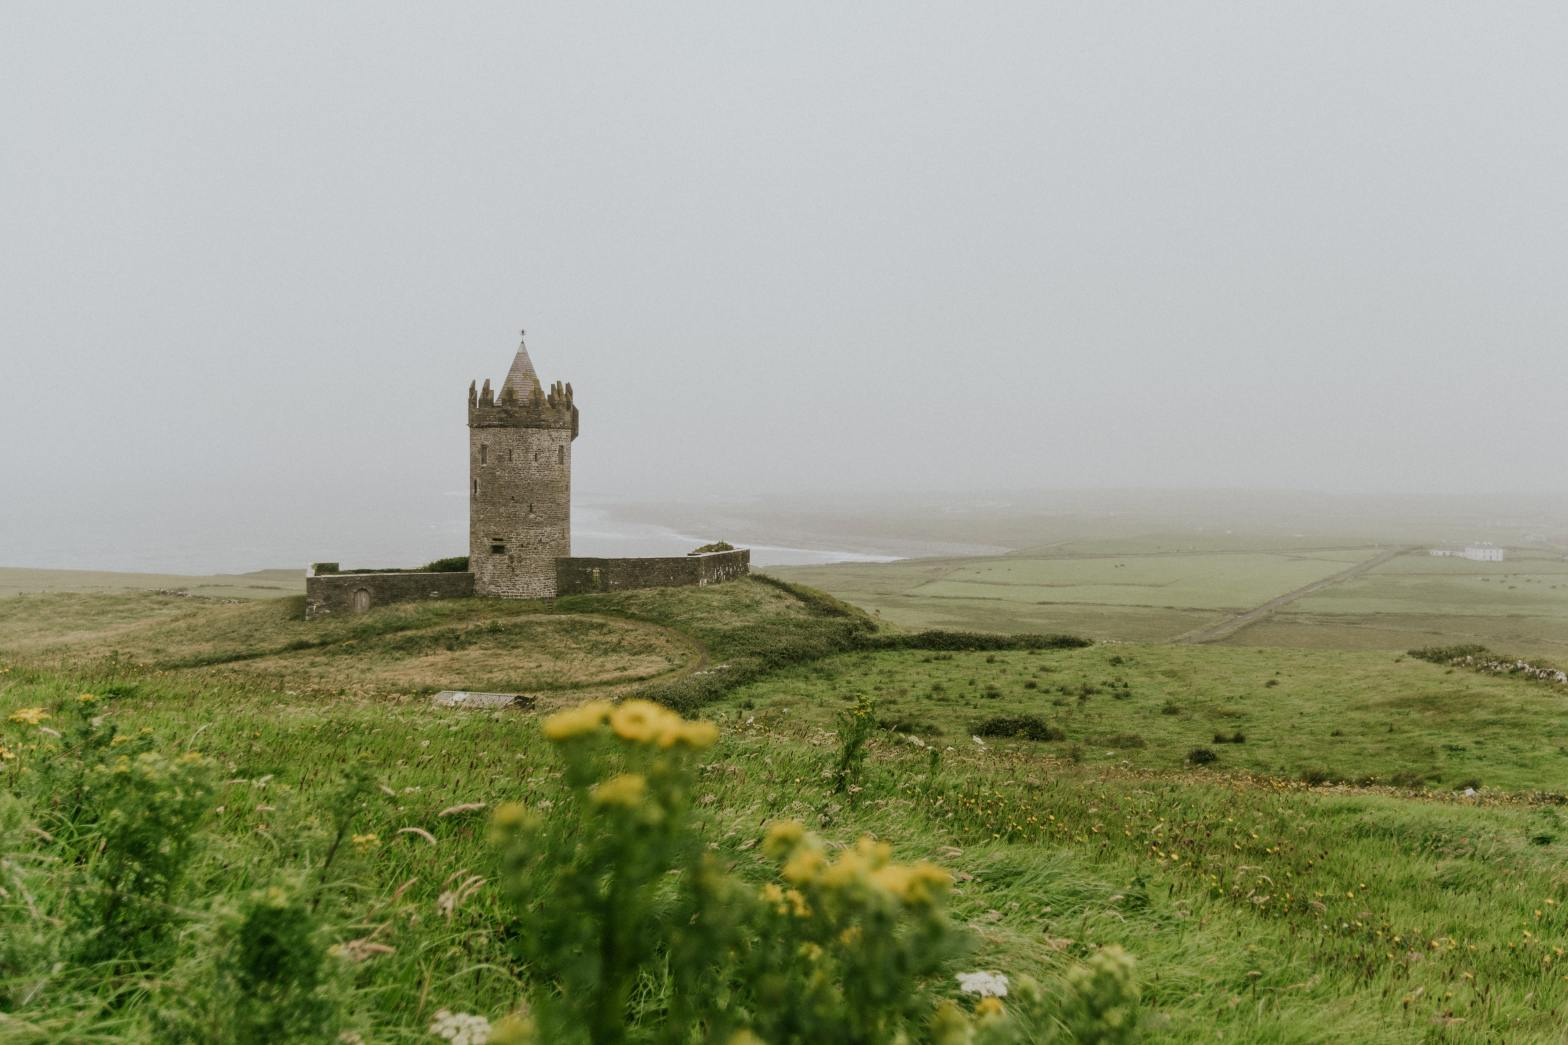 photo of a castle on a hill, Ireland